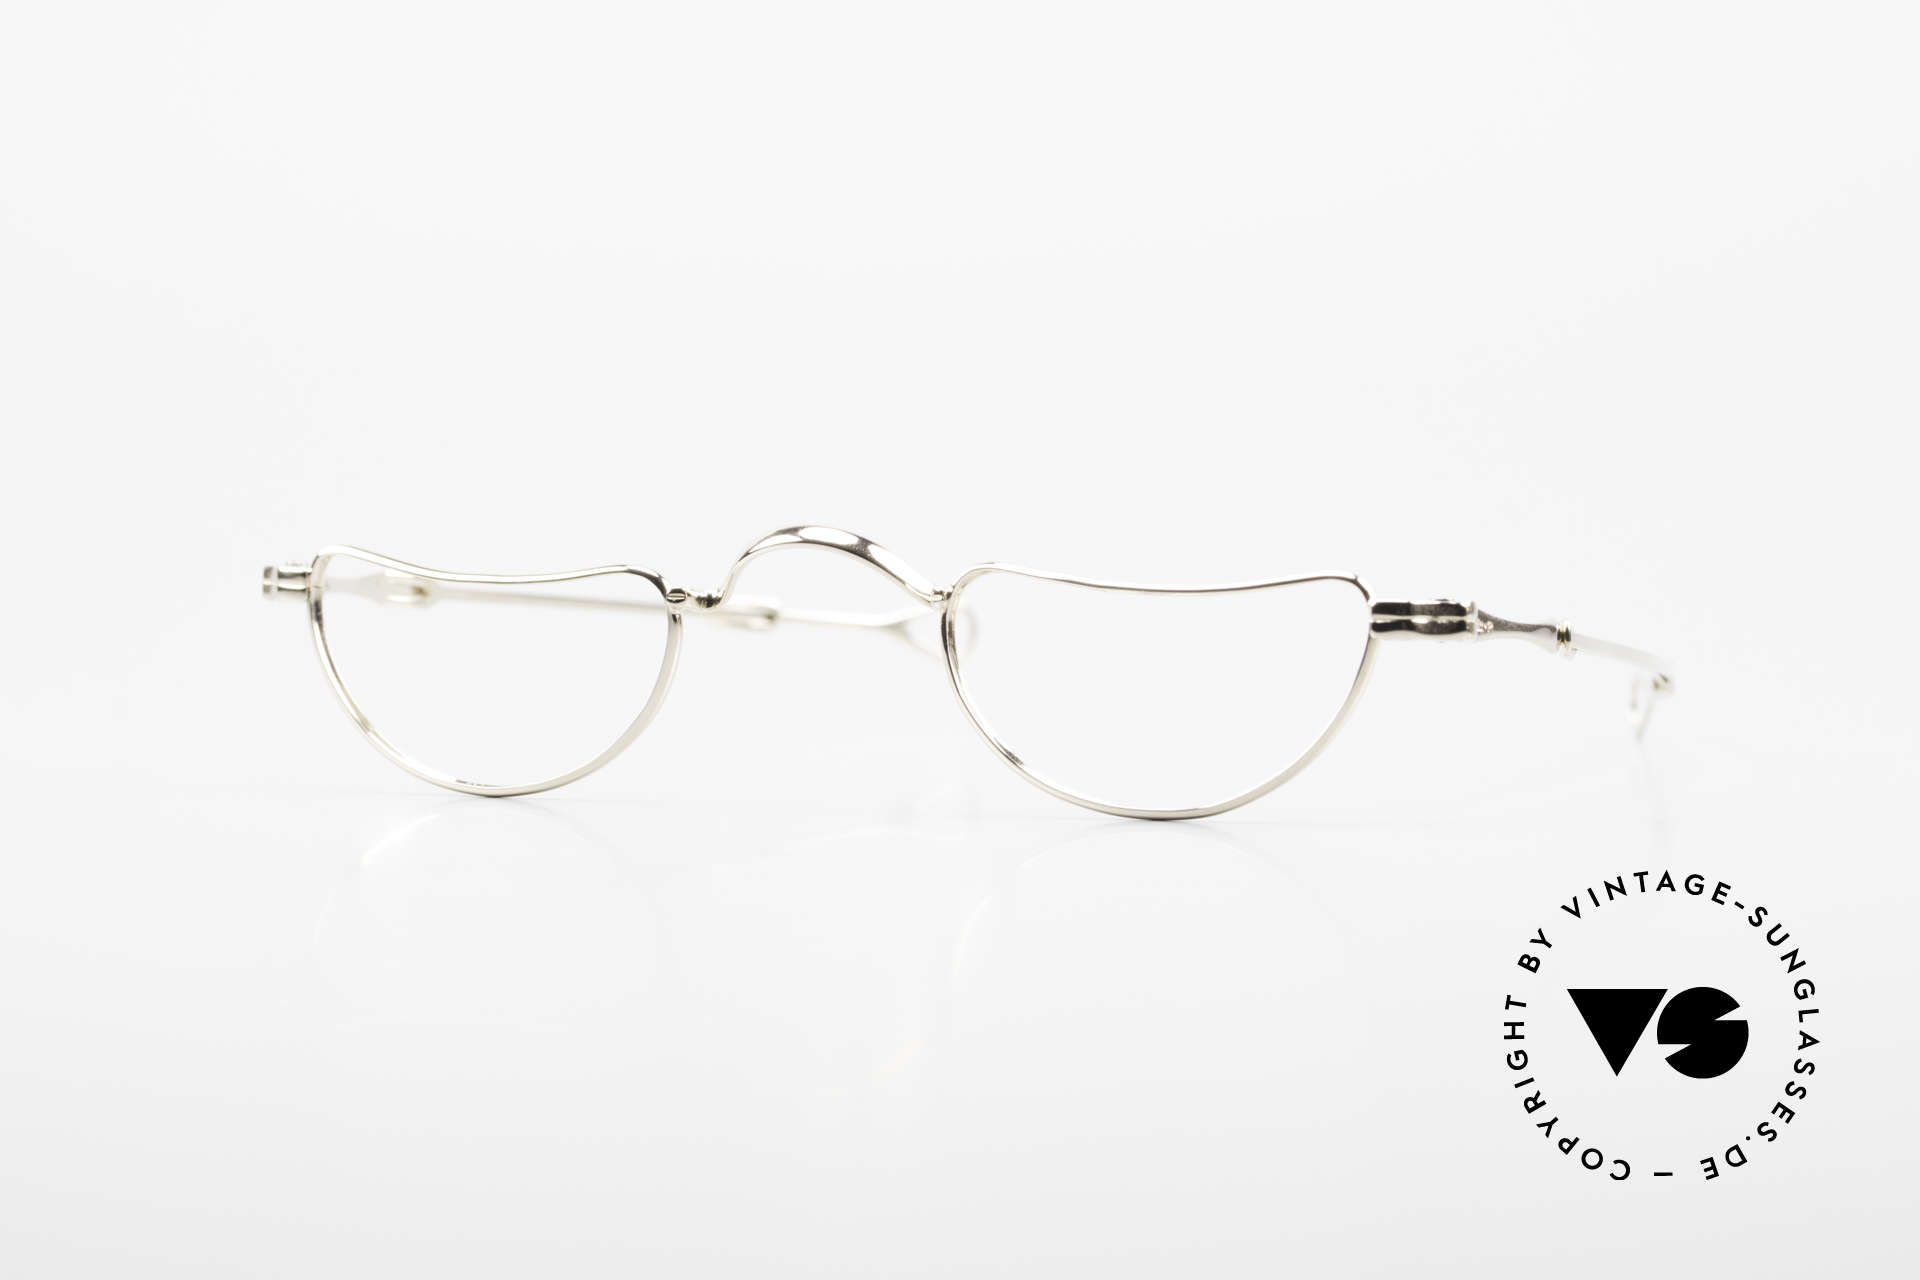 Lunor Goldbrille Solid Gold Glasses 16ct Frame, solid gold glasses from the 1st Lunor collection, ever, Made for Men and Women